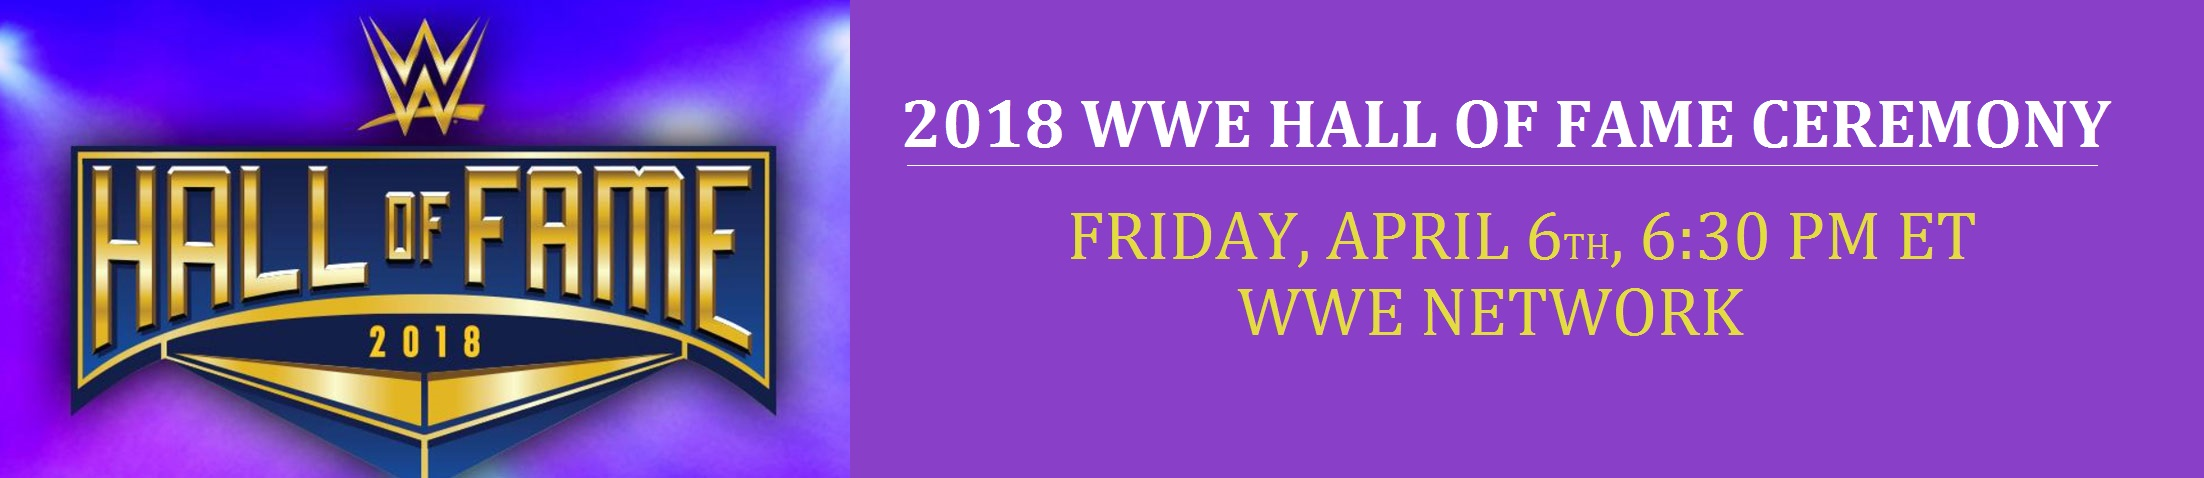 wwe-hall-of-fame-class-of-2018